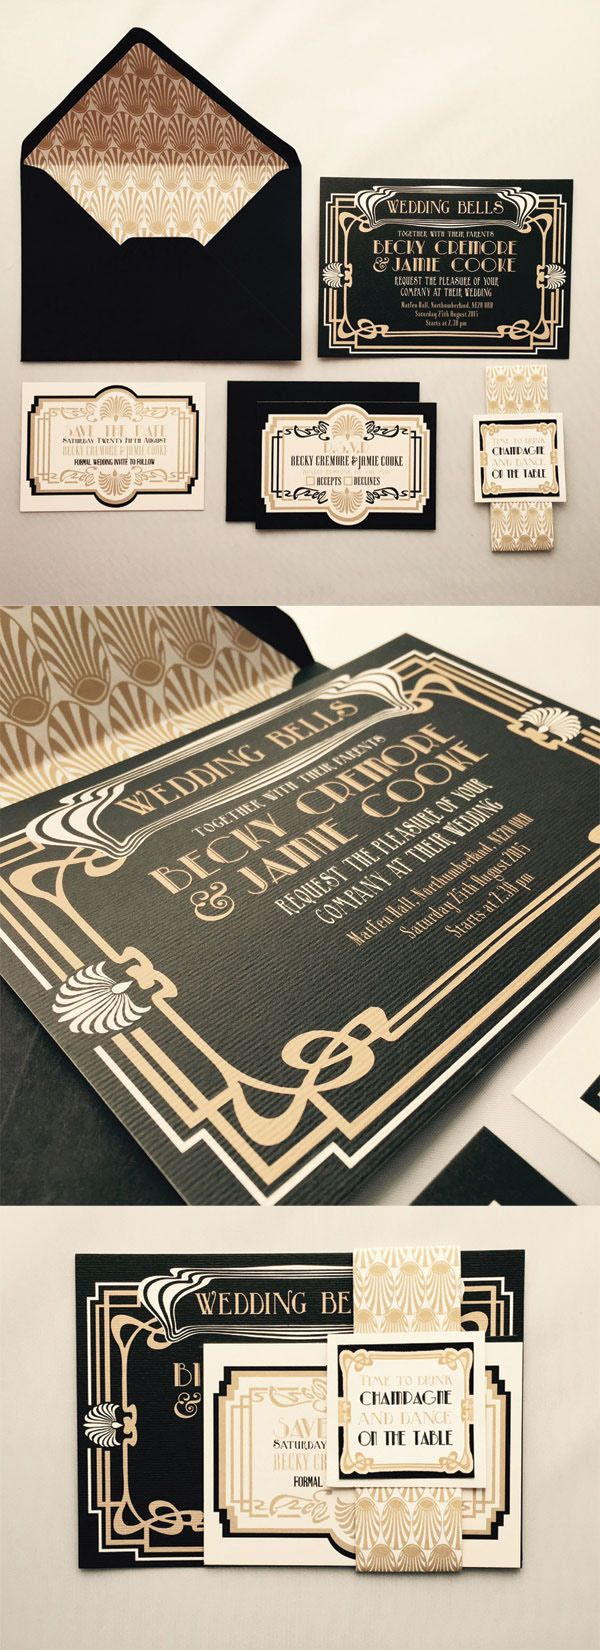 great gatsby invitation great gatsby wedding invitations Art Deco wedding invitations These pretty black and gold s wedding invitations would be perfect Great Gatsby